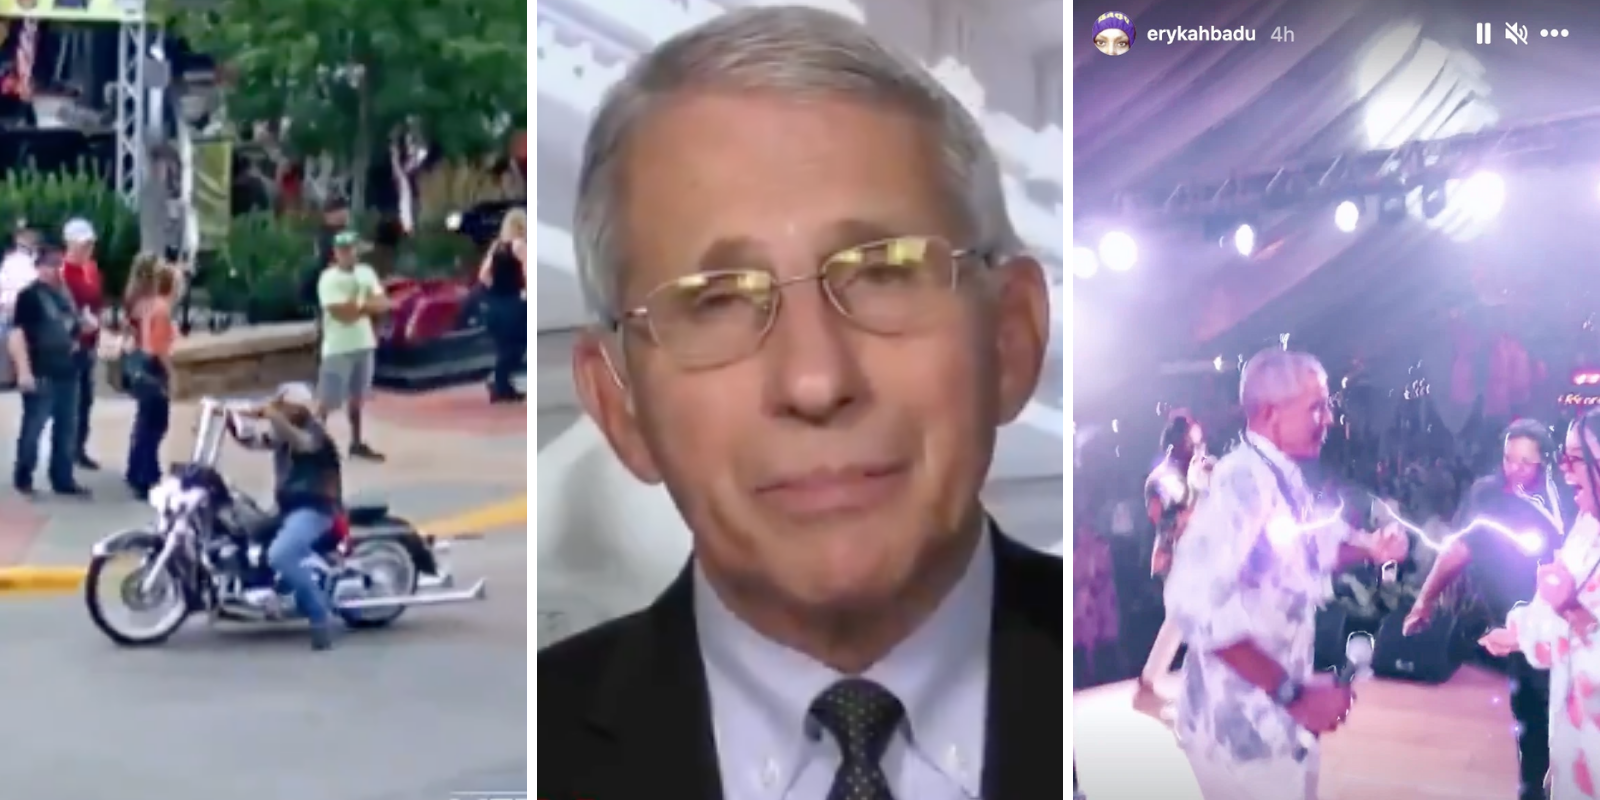 Fauci slams Sturgis Motorcycle Rally but is silent on Obama's 60th birthday mega-bash